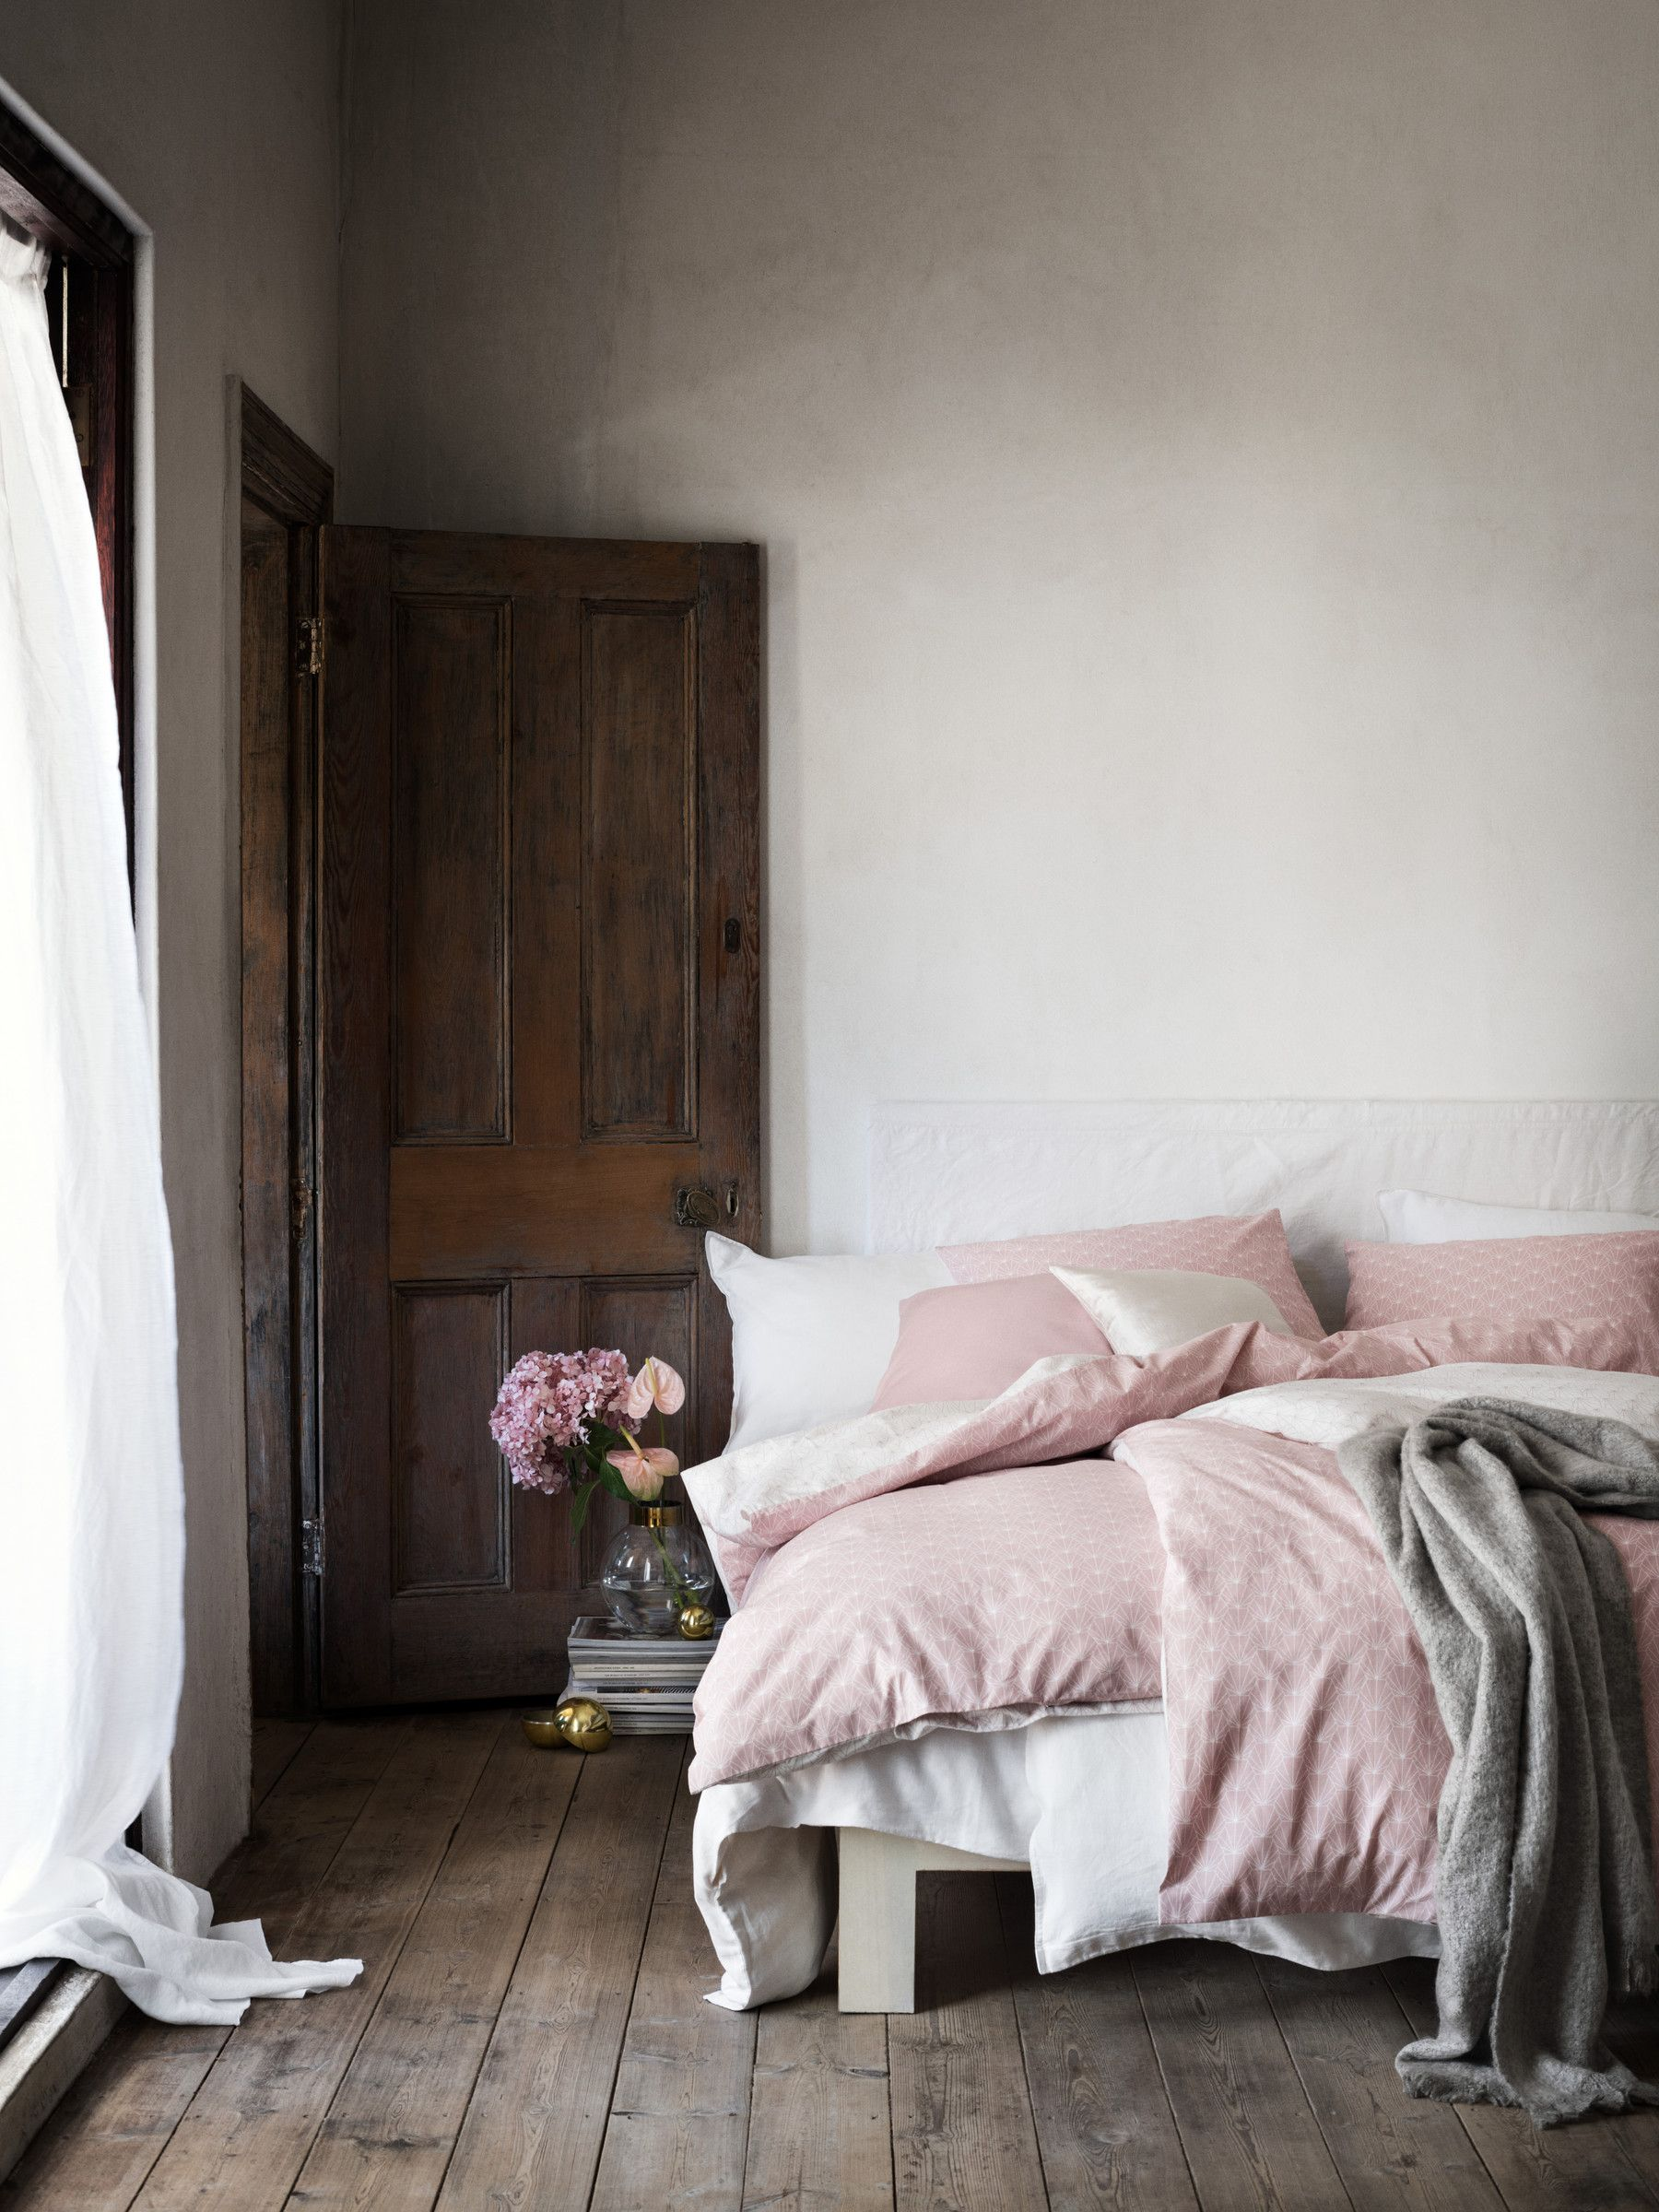 Bedroom With Soft Pink Bedding By Hu0026M Home (shop The Look On My Blog). Von  Innen Nach AußenSchlafzimmer InspirationAussenEinrichten ...